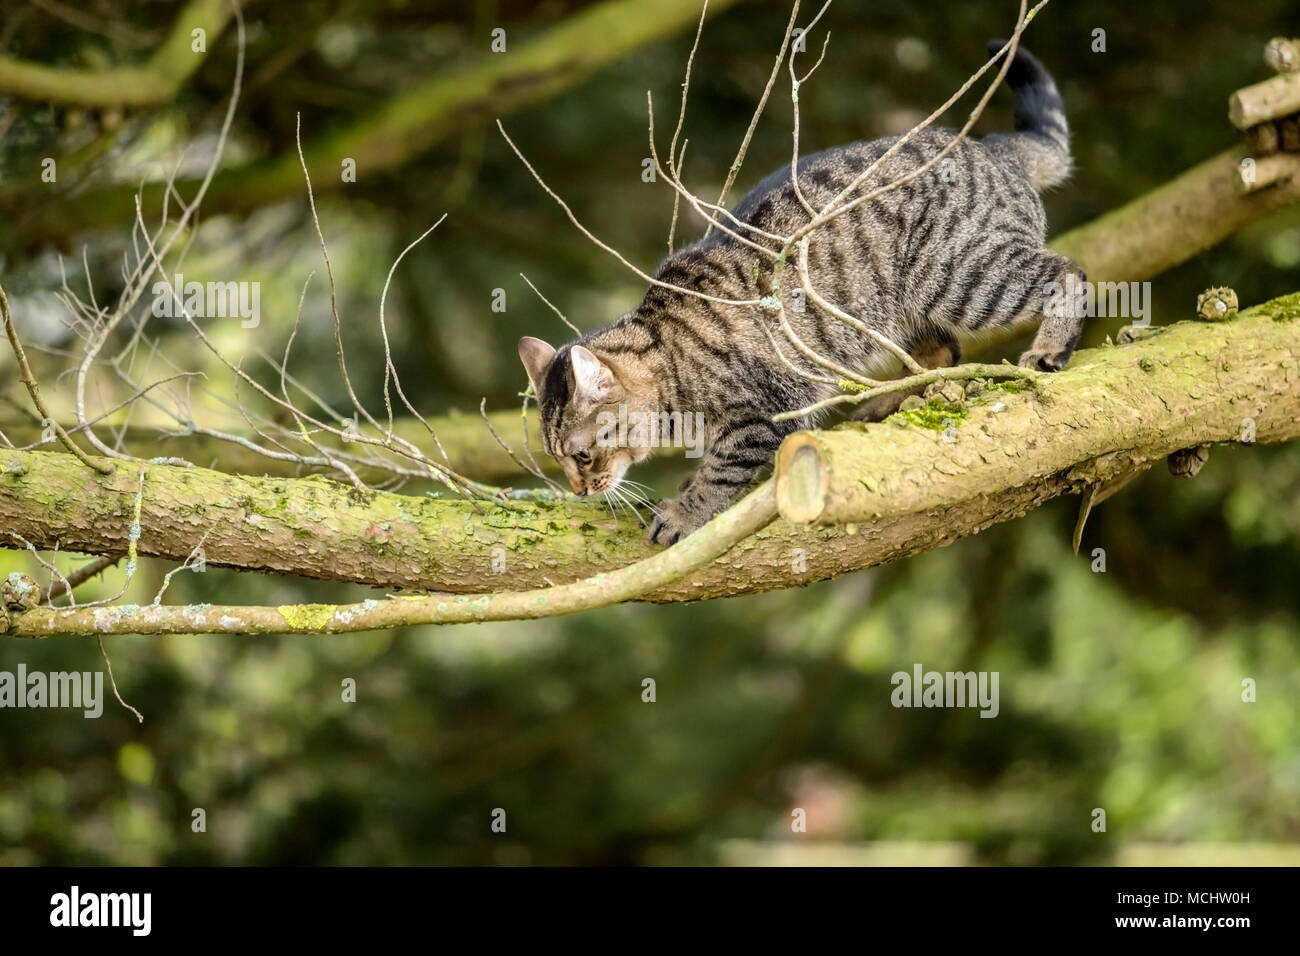 Young tabby cat, bengal cat climbing a Monterey Cyprus tree, peering down from high up on it's branches - Stock Image